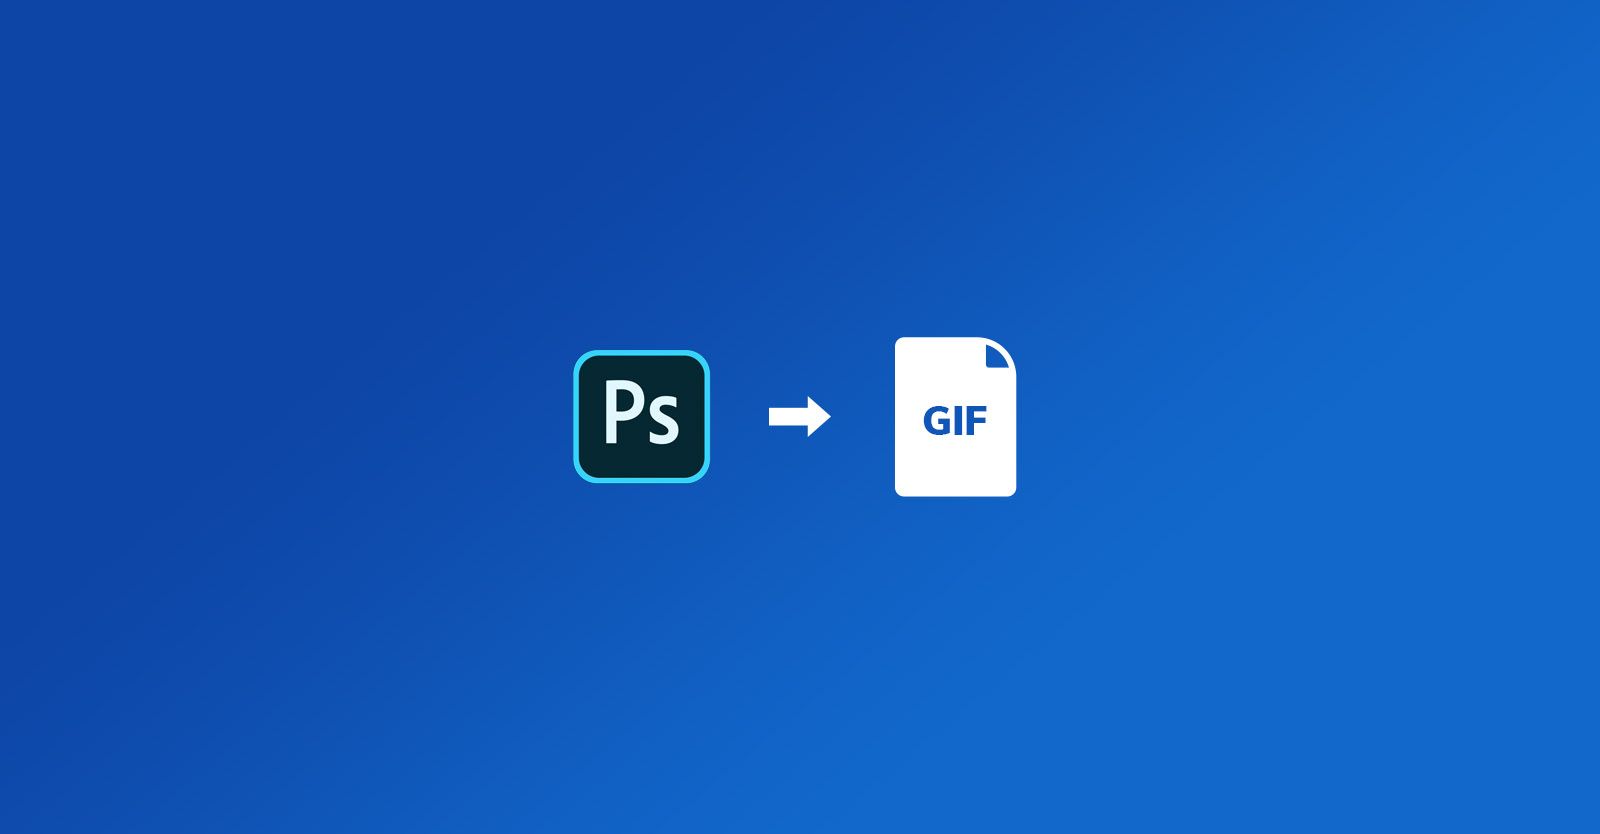 How to export a GIF file from Photoshop